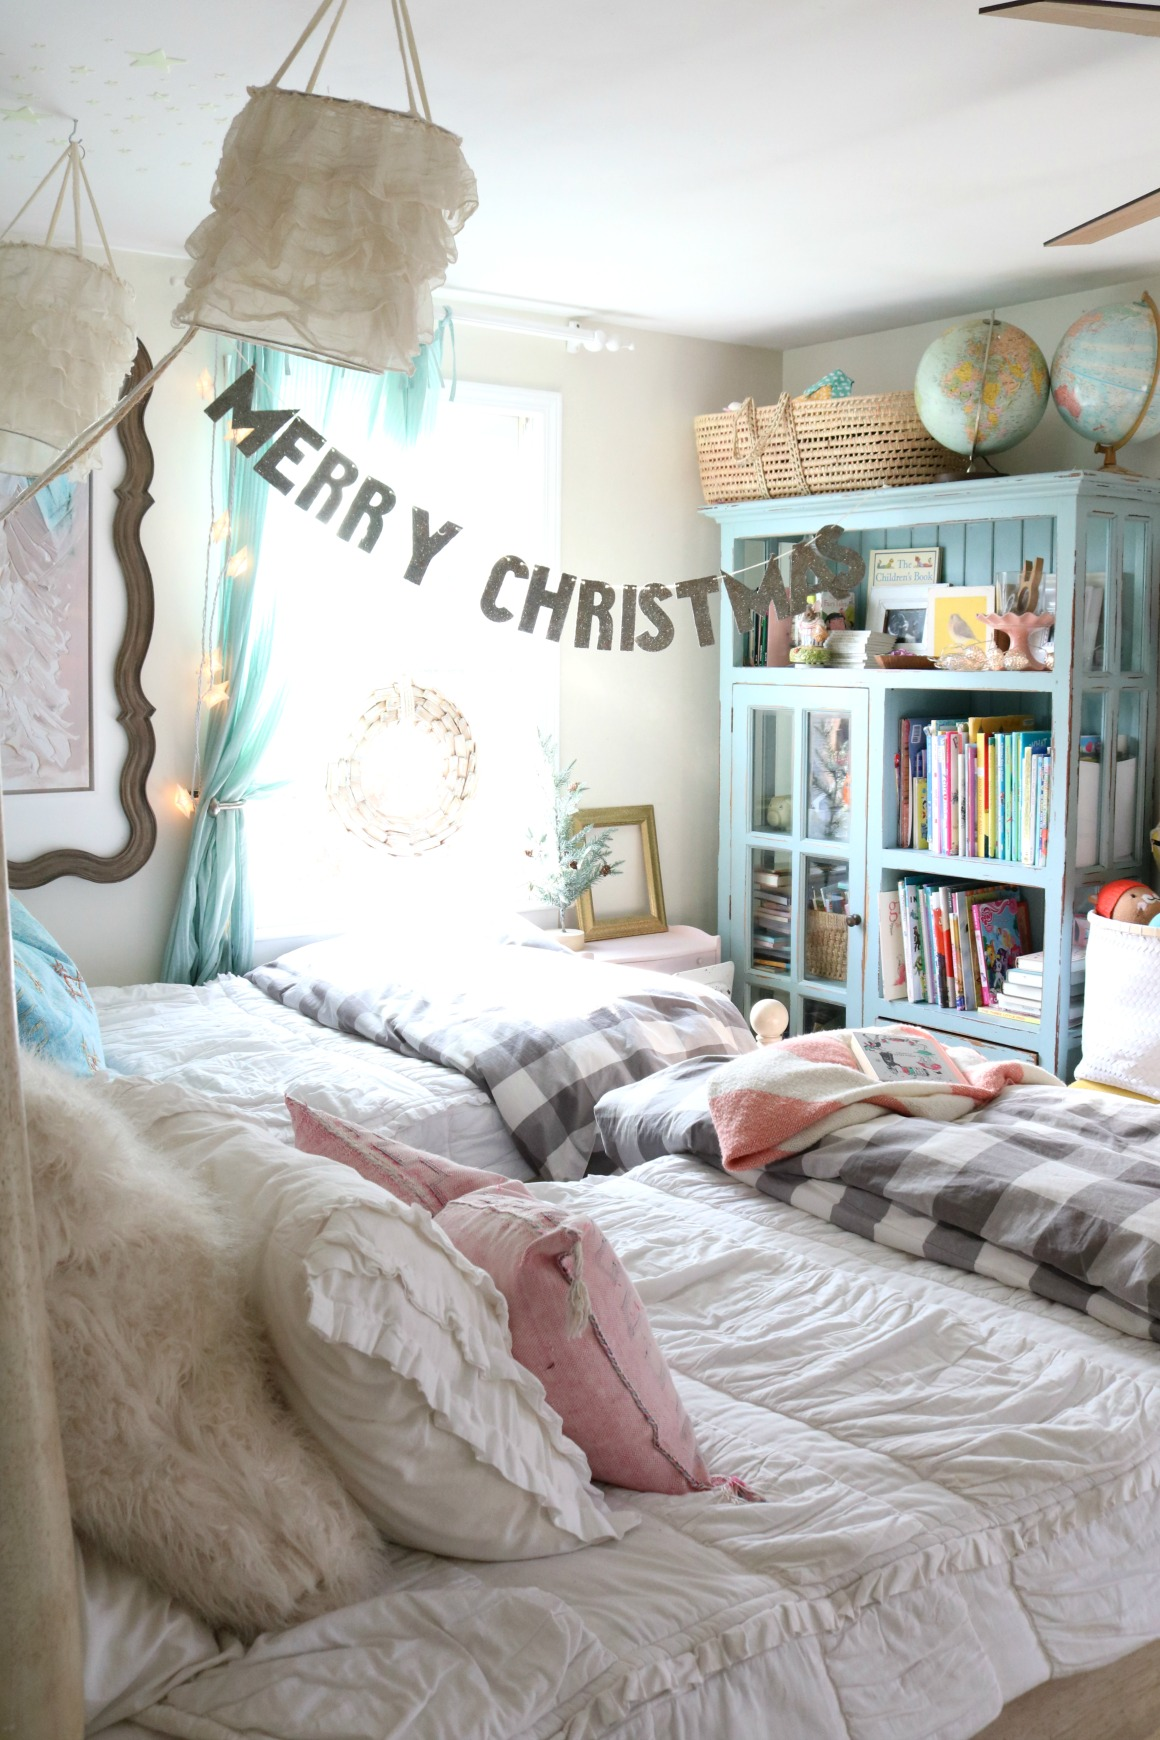 Christmas Decor In A Small Cape Girls Shared Bedroom 0367